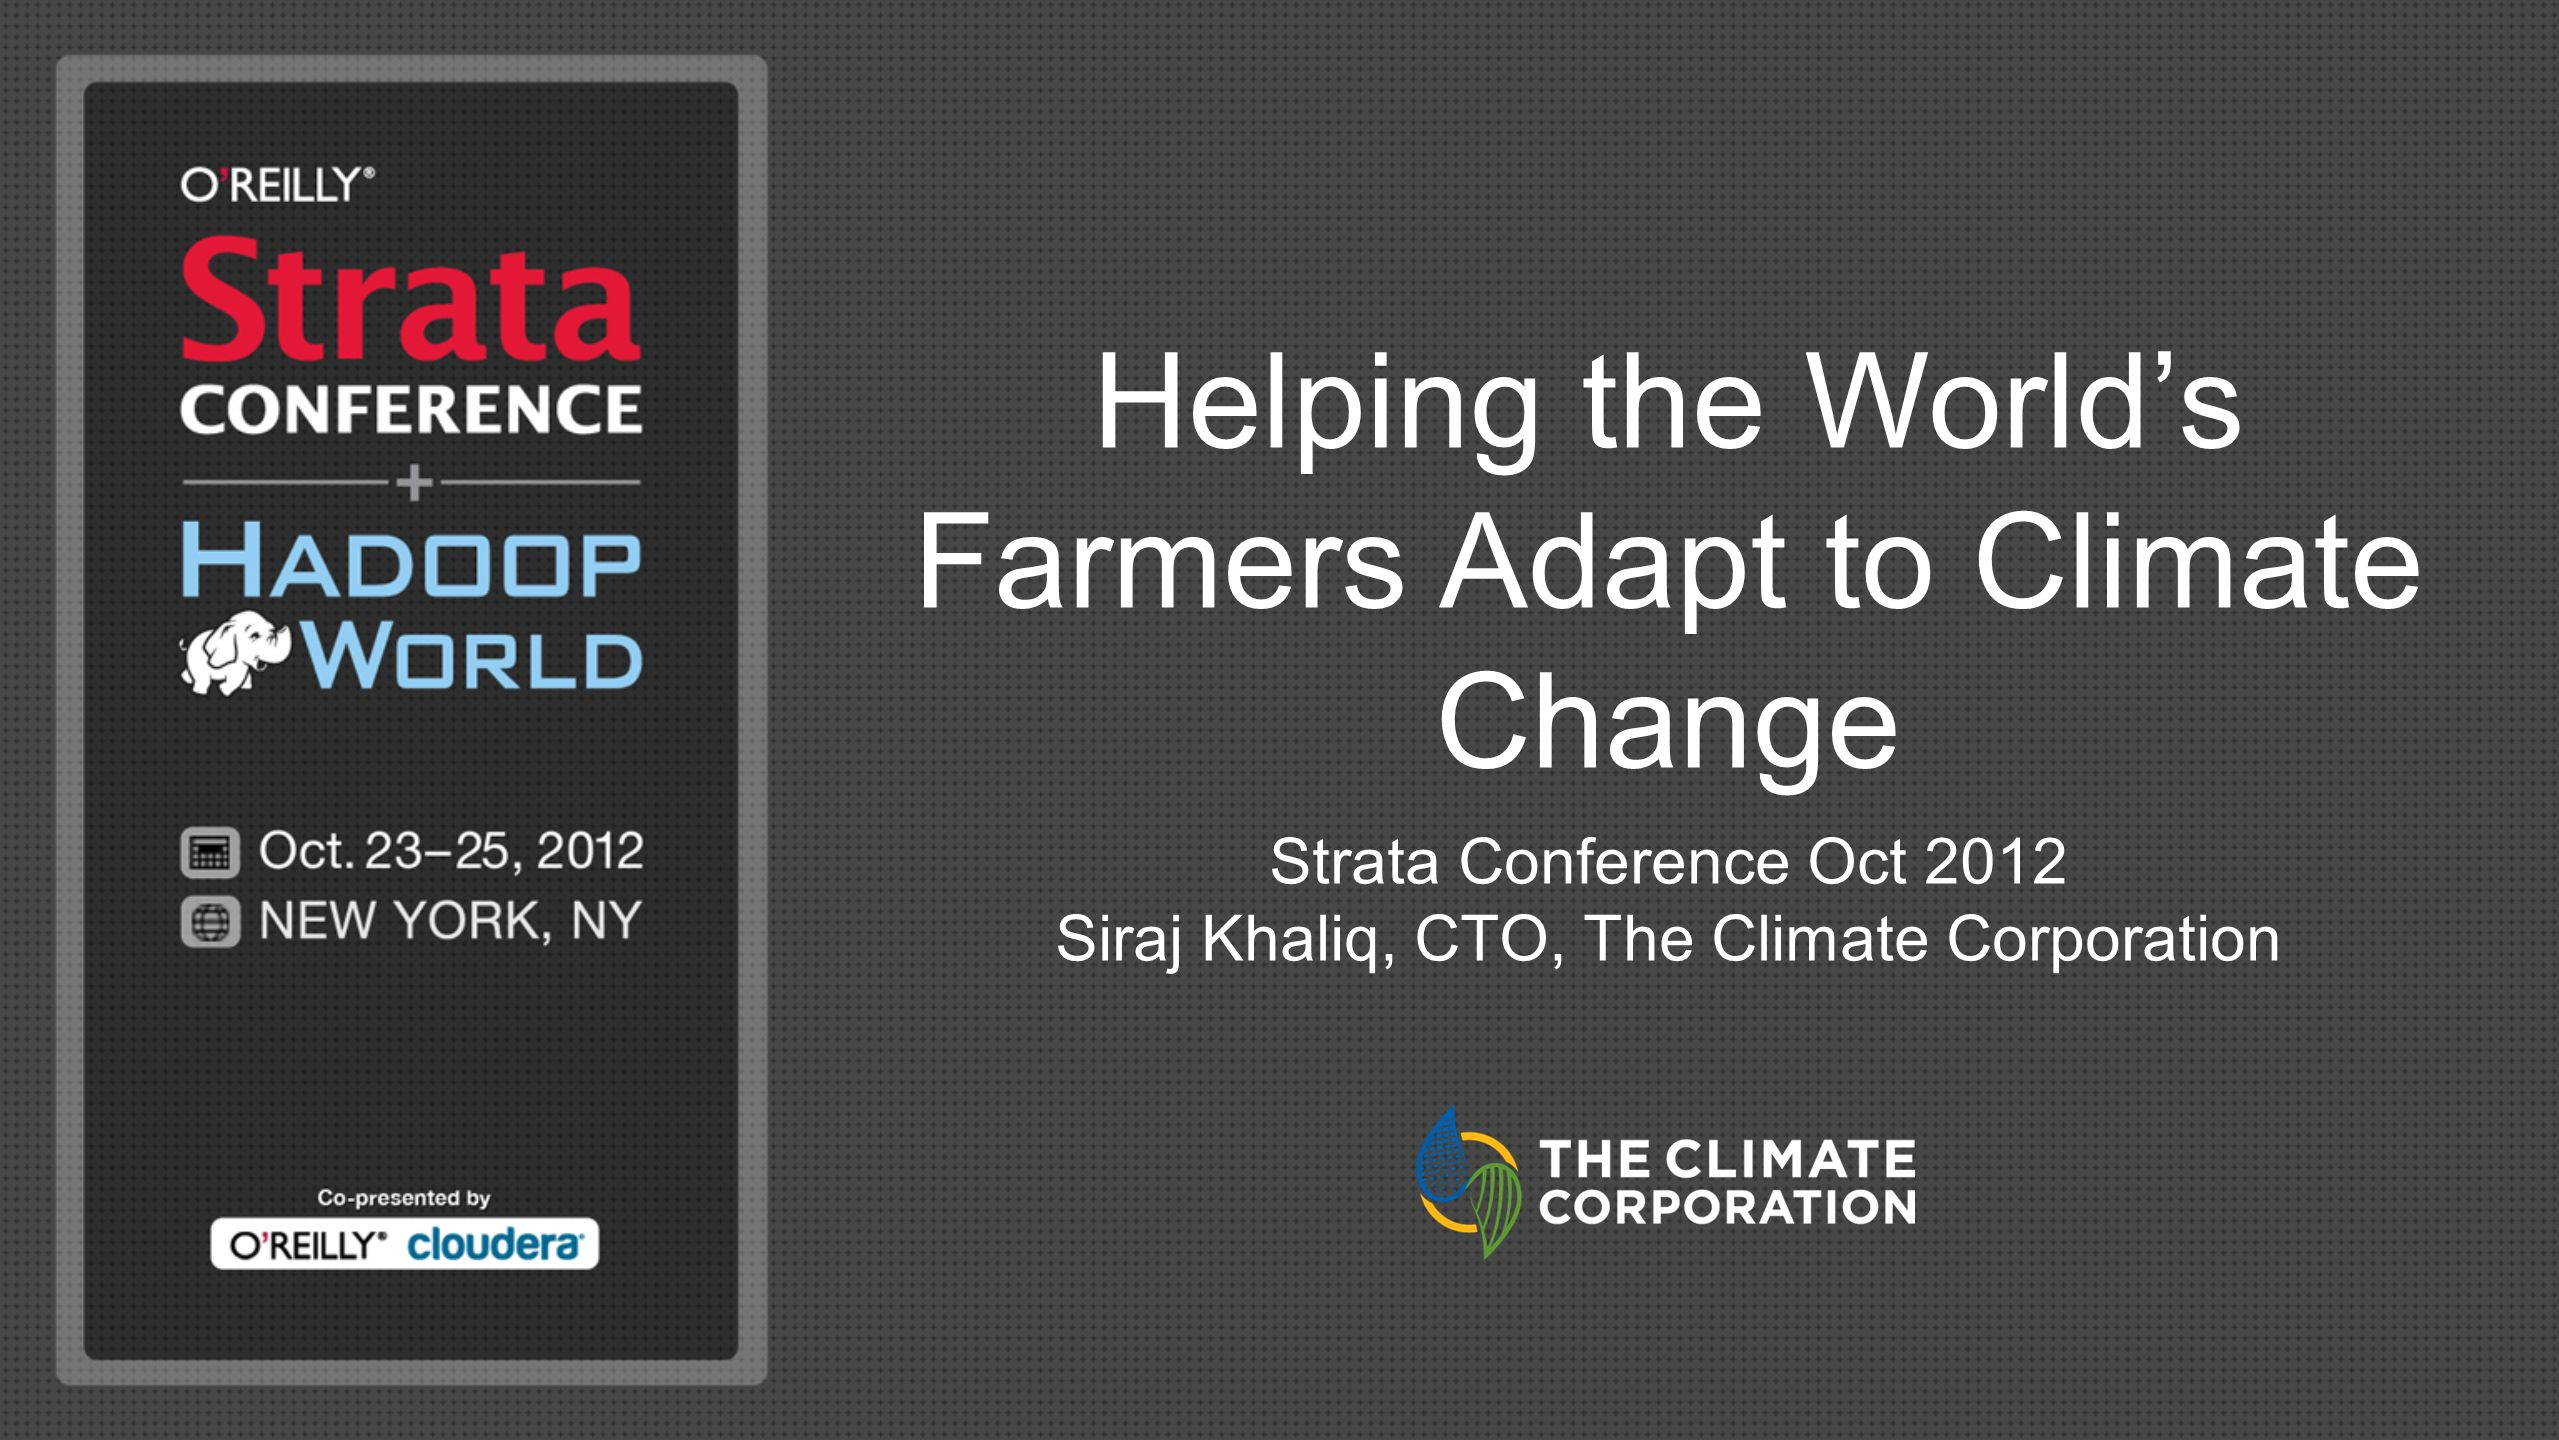 Helping the Worlds Farmers Adapt to Climate Change Strata Conference Oct 2012 Siraj Khaliq, CTO, The Climate Corporation